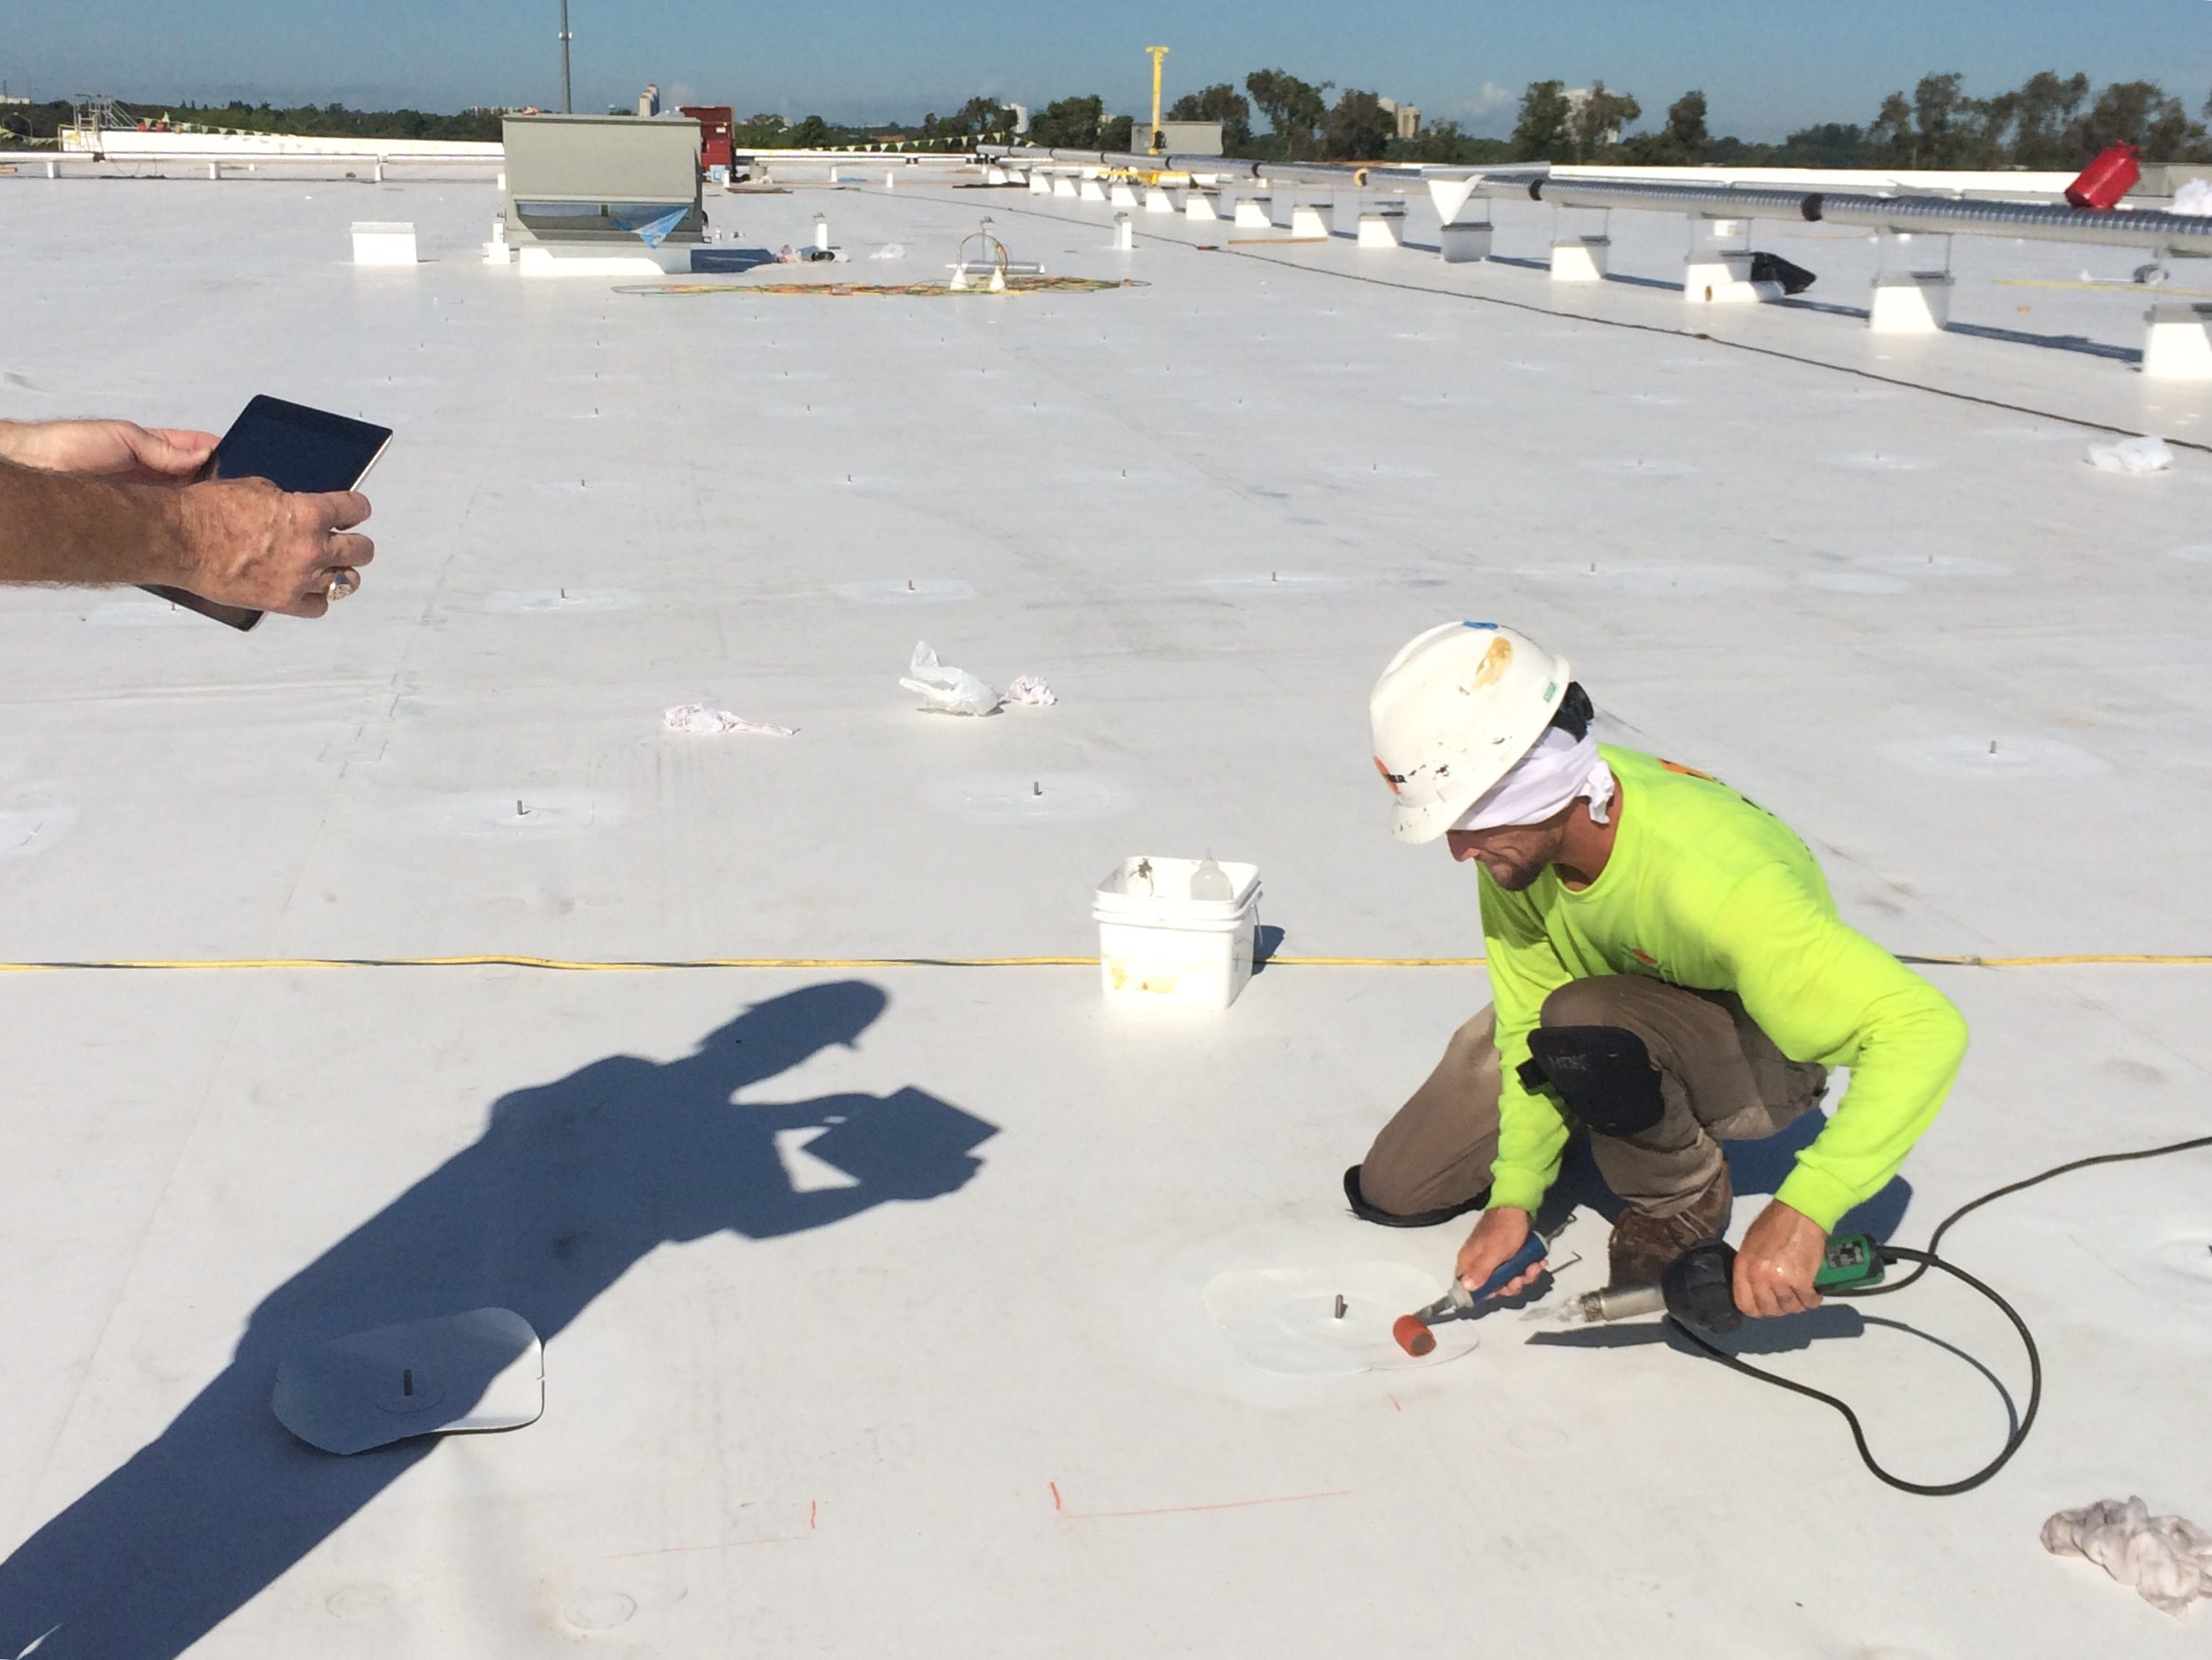 Scott McIntyre, CEO Of Tampa Bay Based Solar Energy Management, Takes An  IPad Shot Of A Crowther Roofing Worker Installing A Fastener By Heat  Welding It To ...